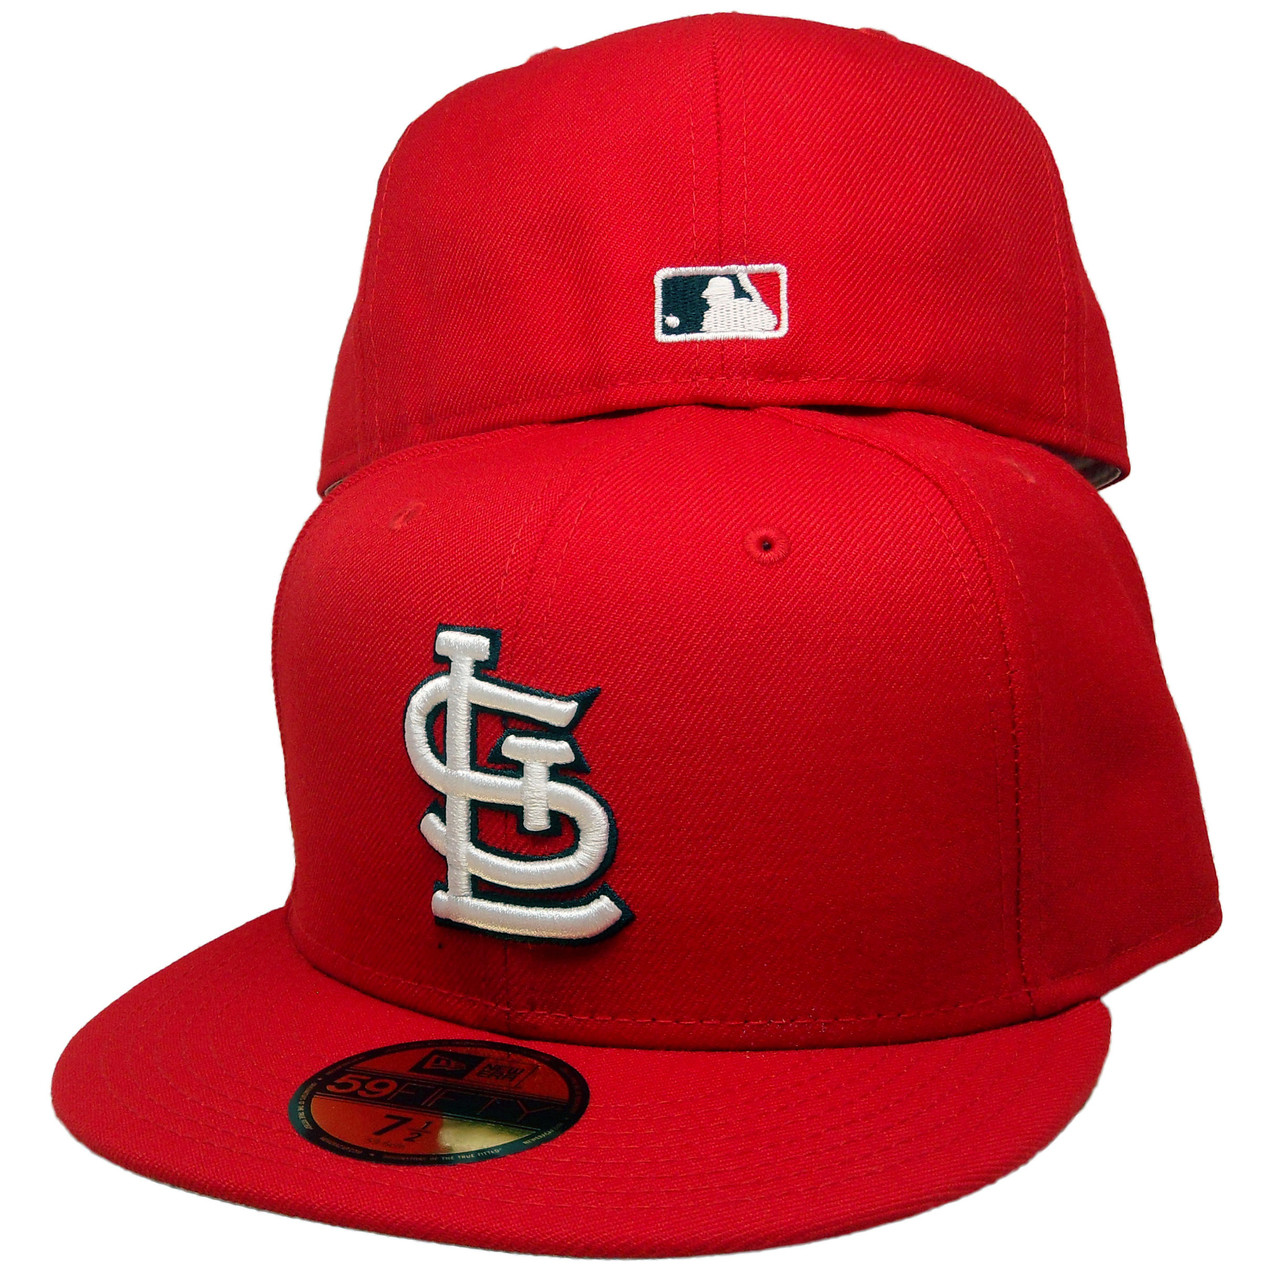 St. Louis Cardinals New Era Custom 59Fifty Fitted - Red 4f25336f0e4